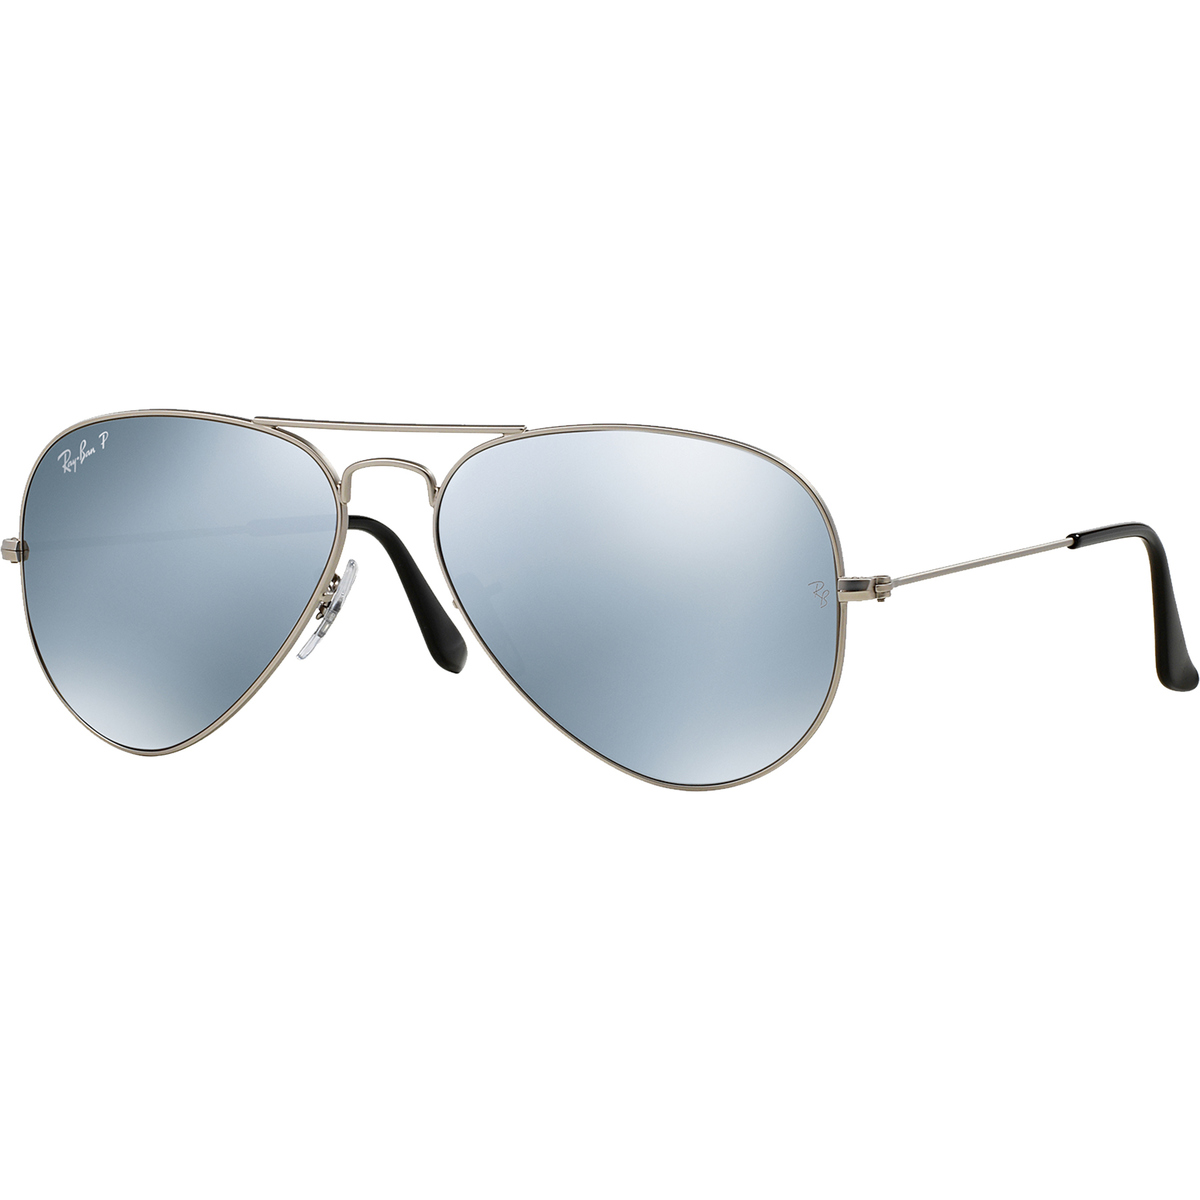 6be7cc0c15 Ray-Ban Polarized Aviator Sunglasses - Silver - 0RB3025019W358 ...